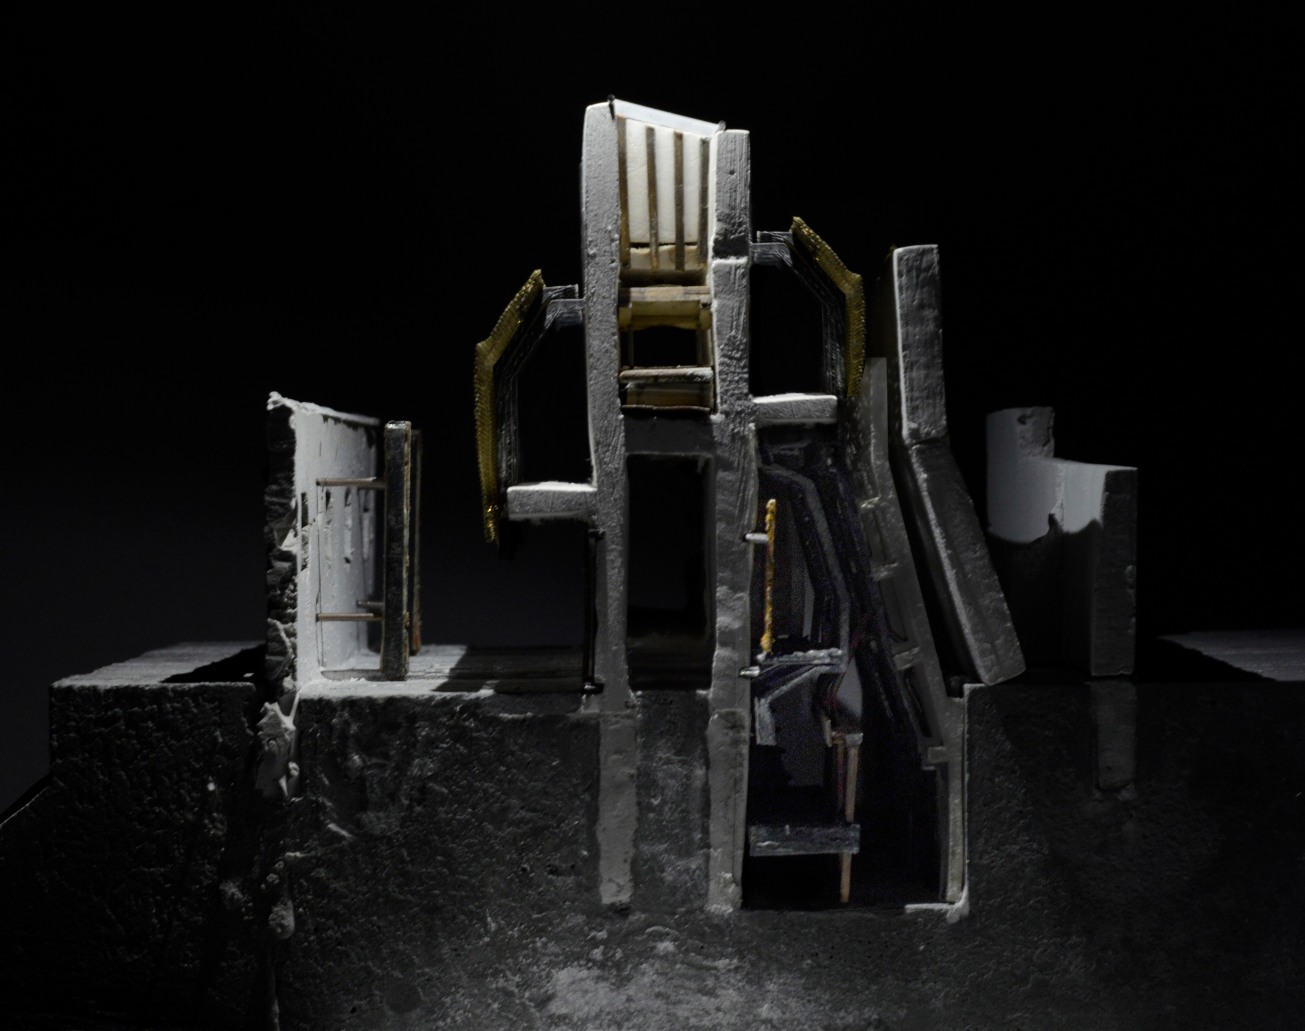 Proposal_Perfumery and Soap Factory_Model